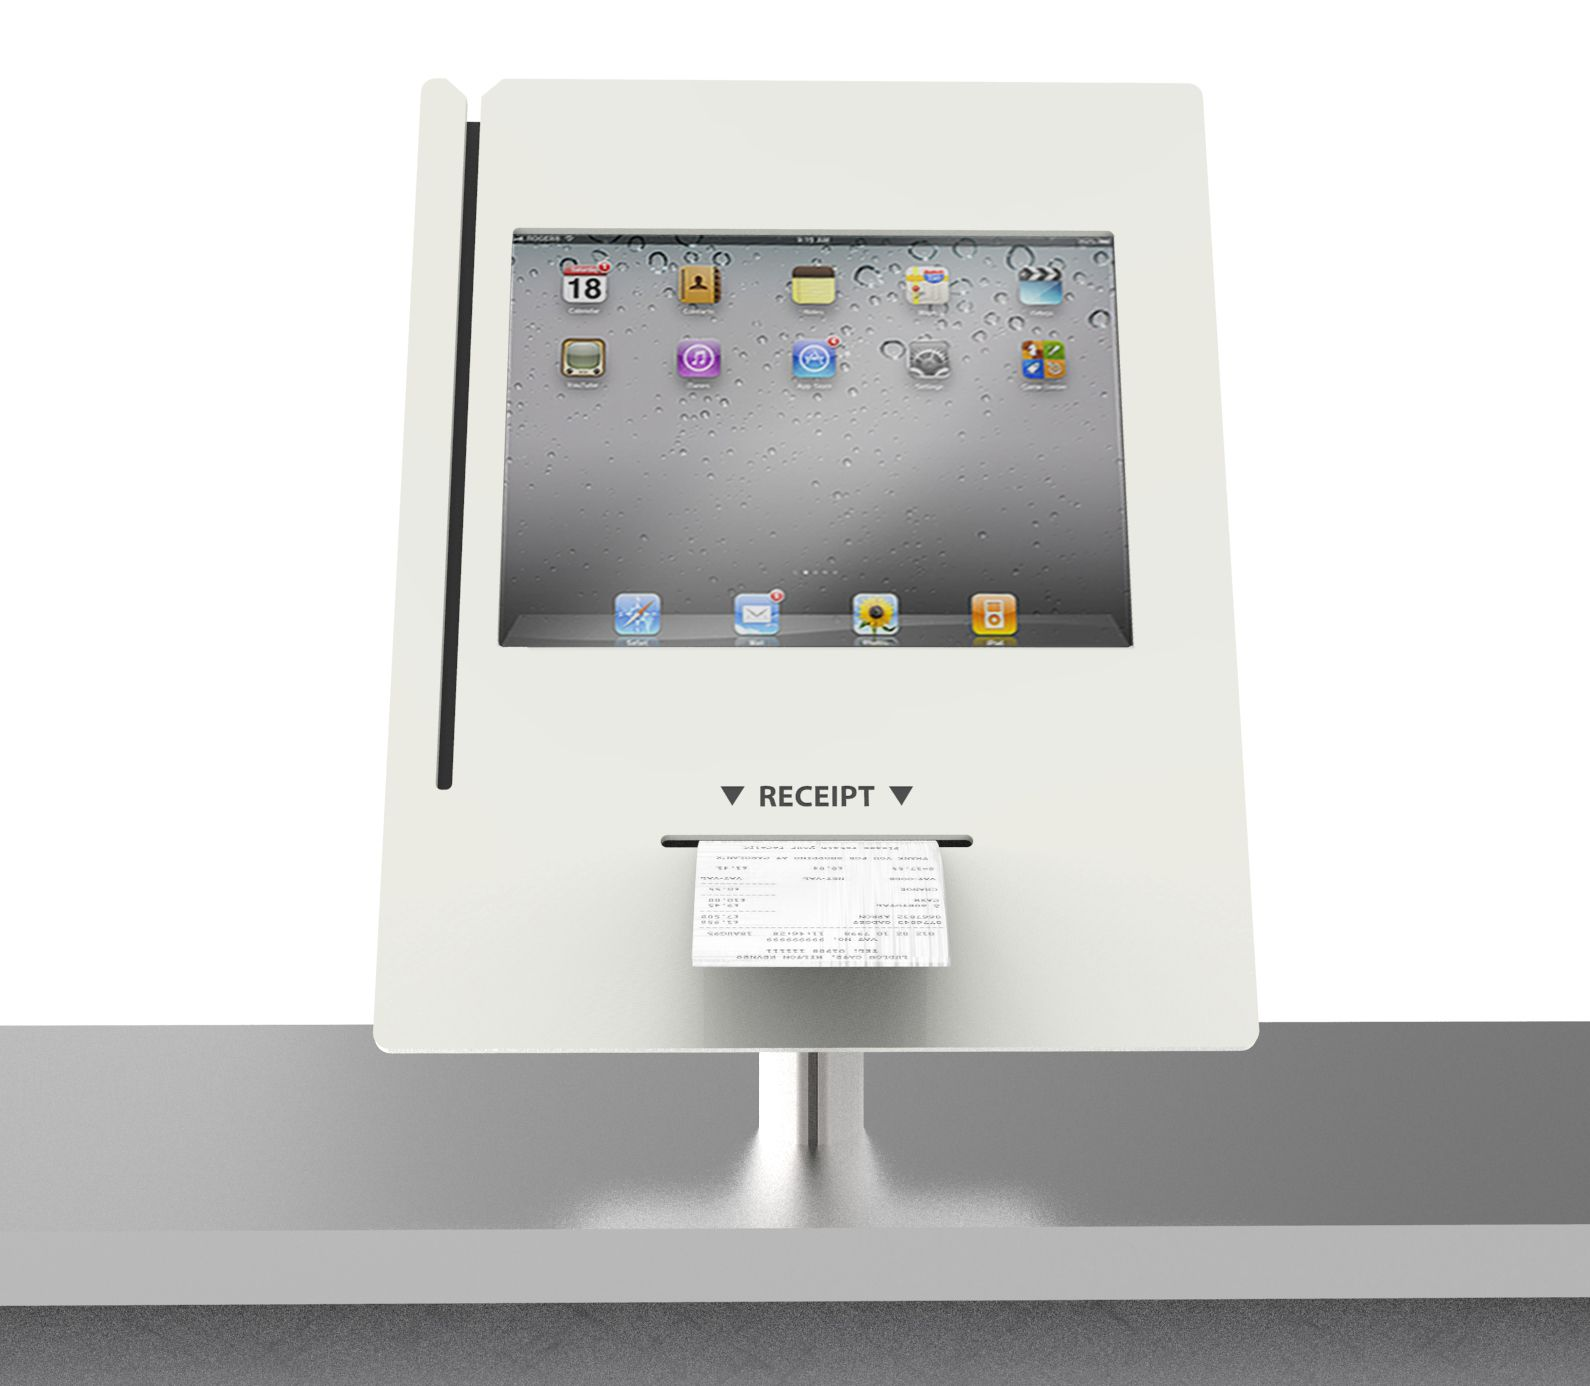 Expo 10 Tablet Or Ipad Enclosure Wall Mount With Card Reader Holder Tablet Kiosk Swipe Card Ipad Kiosk